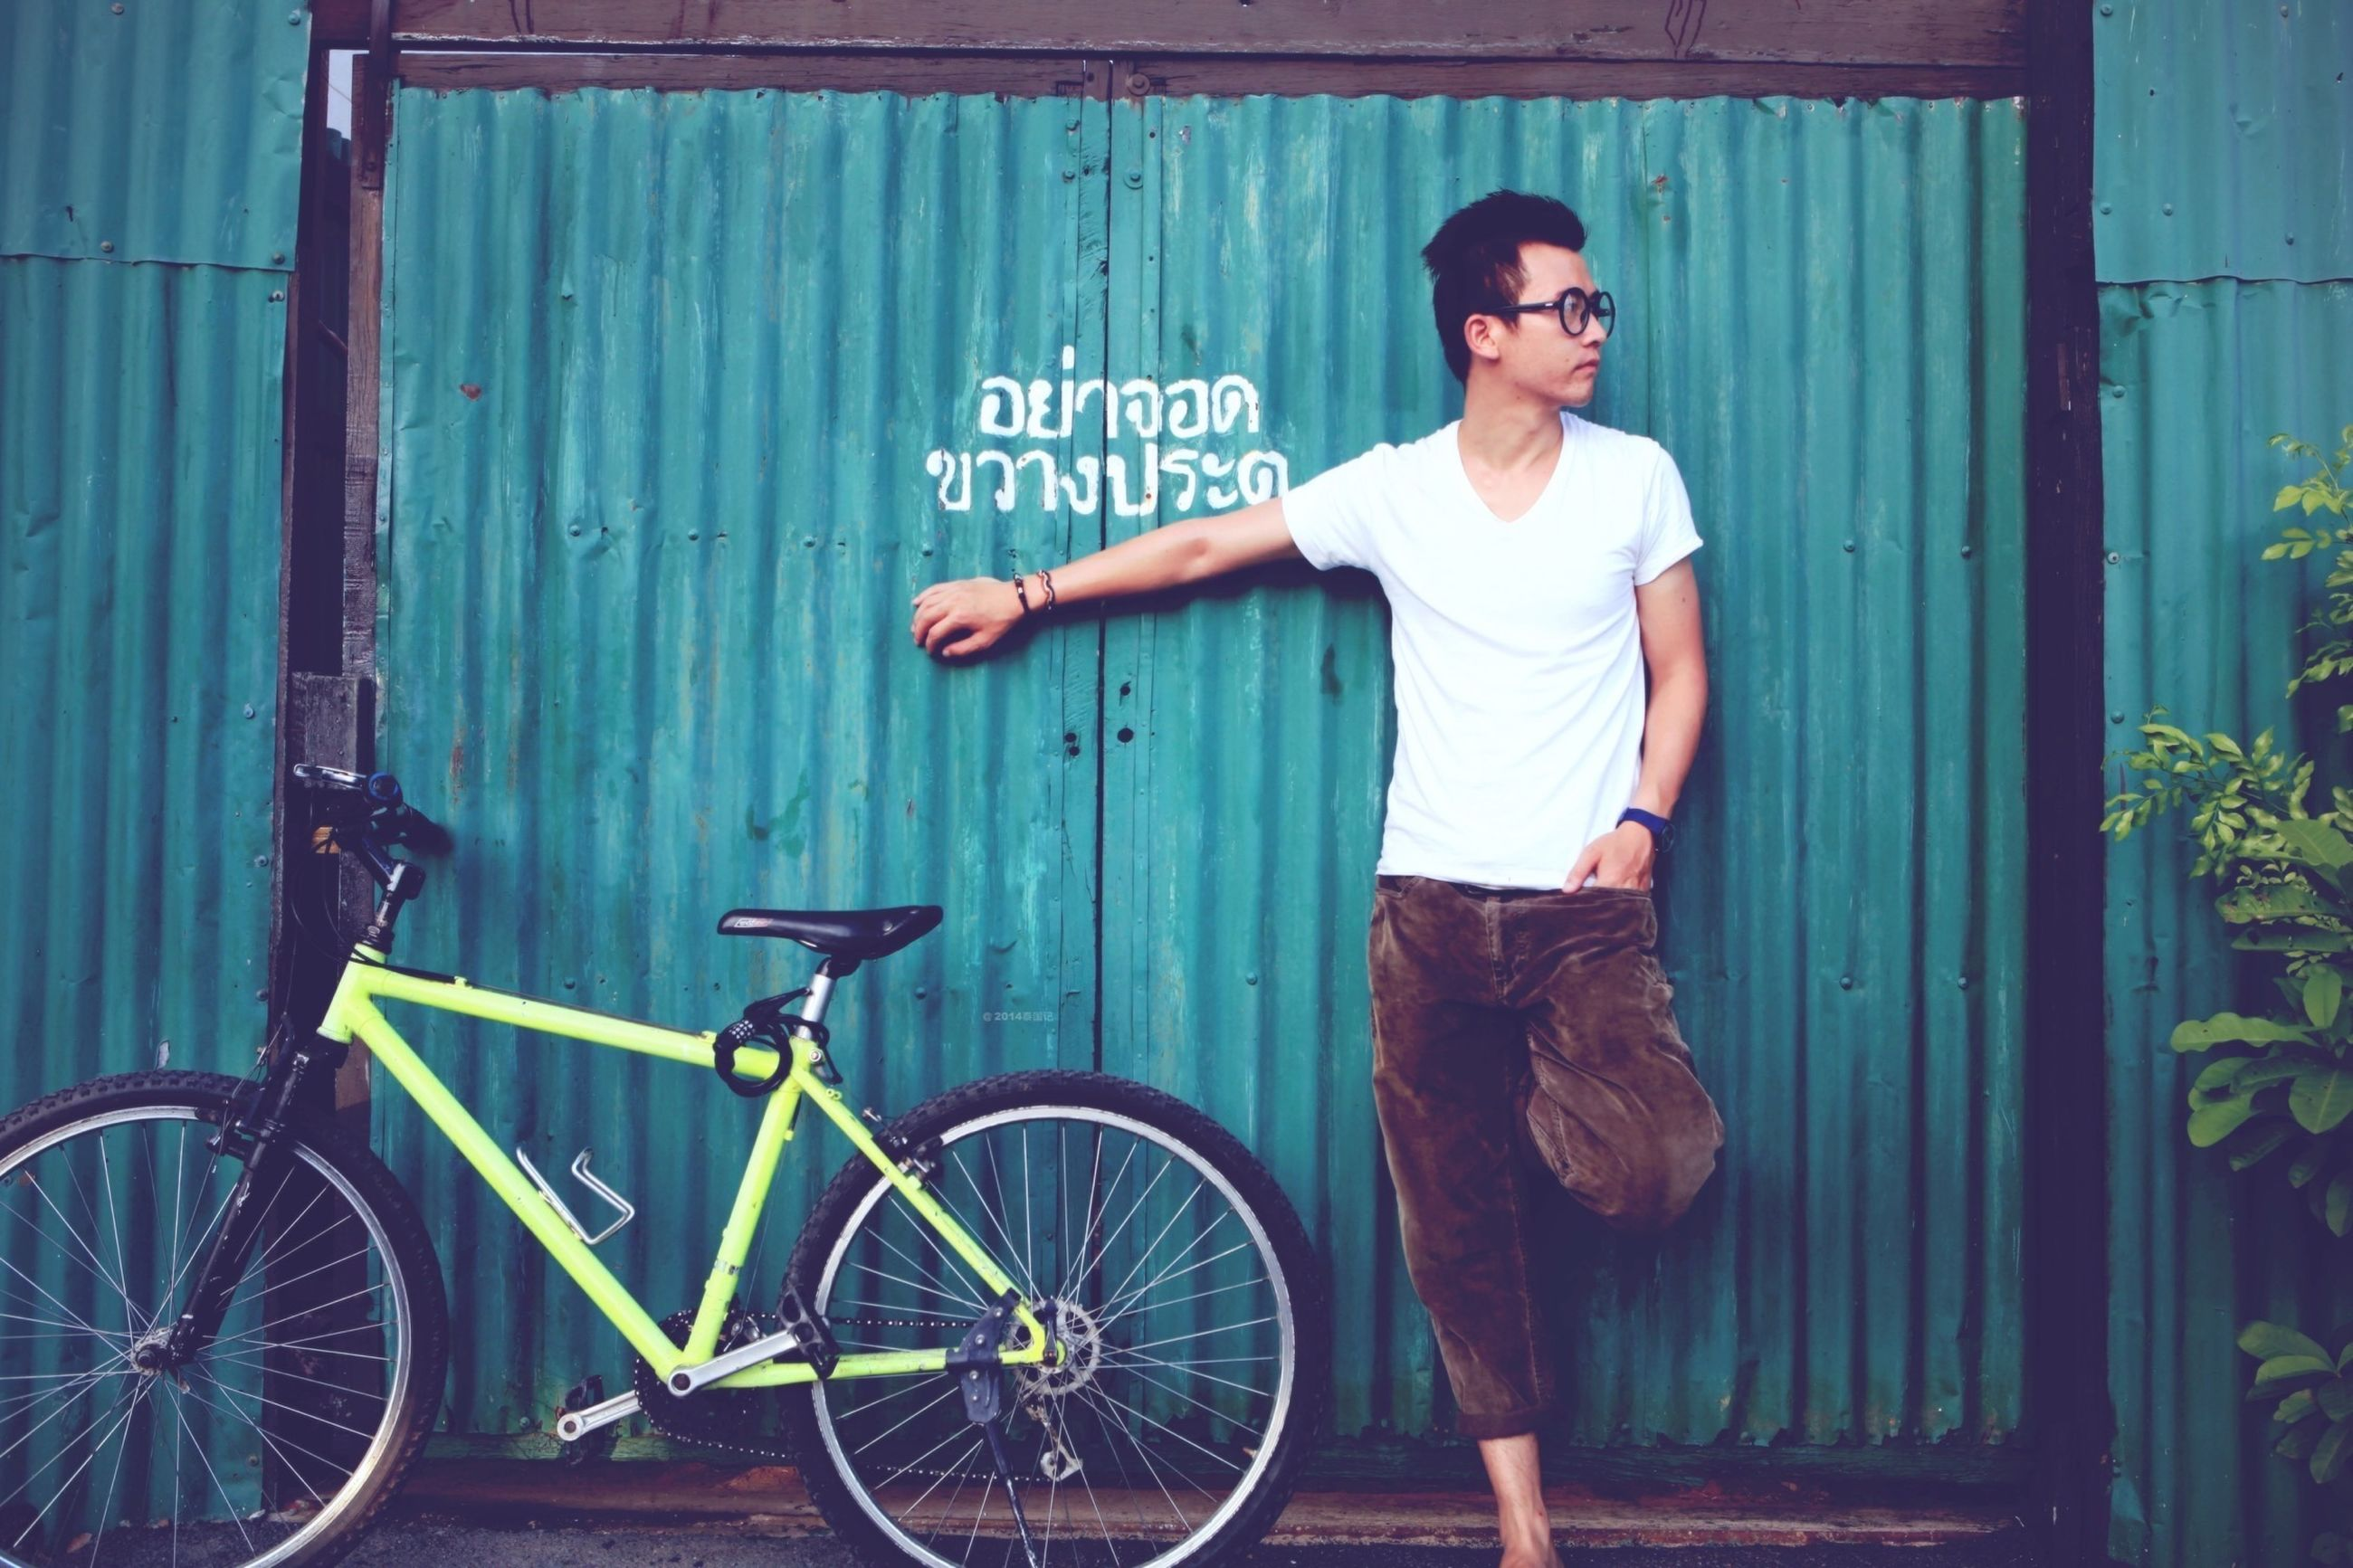 bicycle, person, casual clothing, young adult, full length, lifestyles, front view, mode of transport, transportation, looking at camera, land vehicle, leisure activity, portrait, smiling, leaning, standing, building exterior, built structure